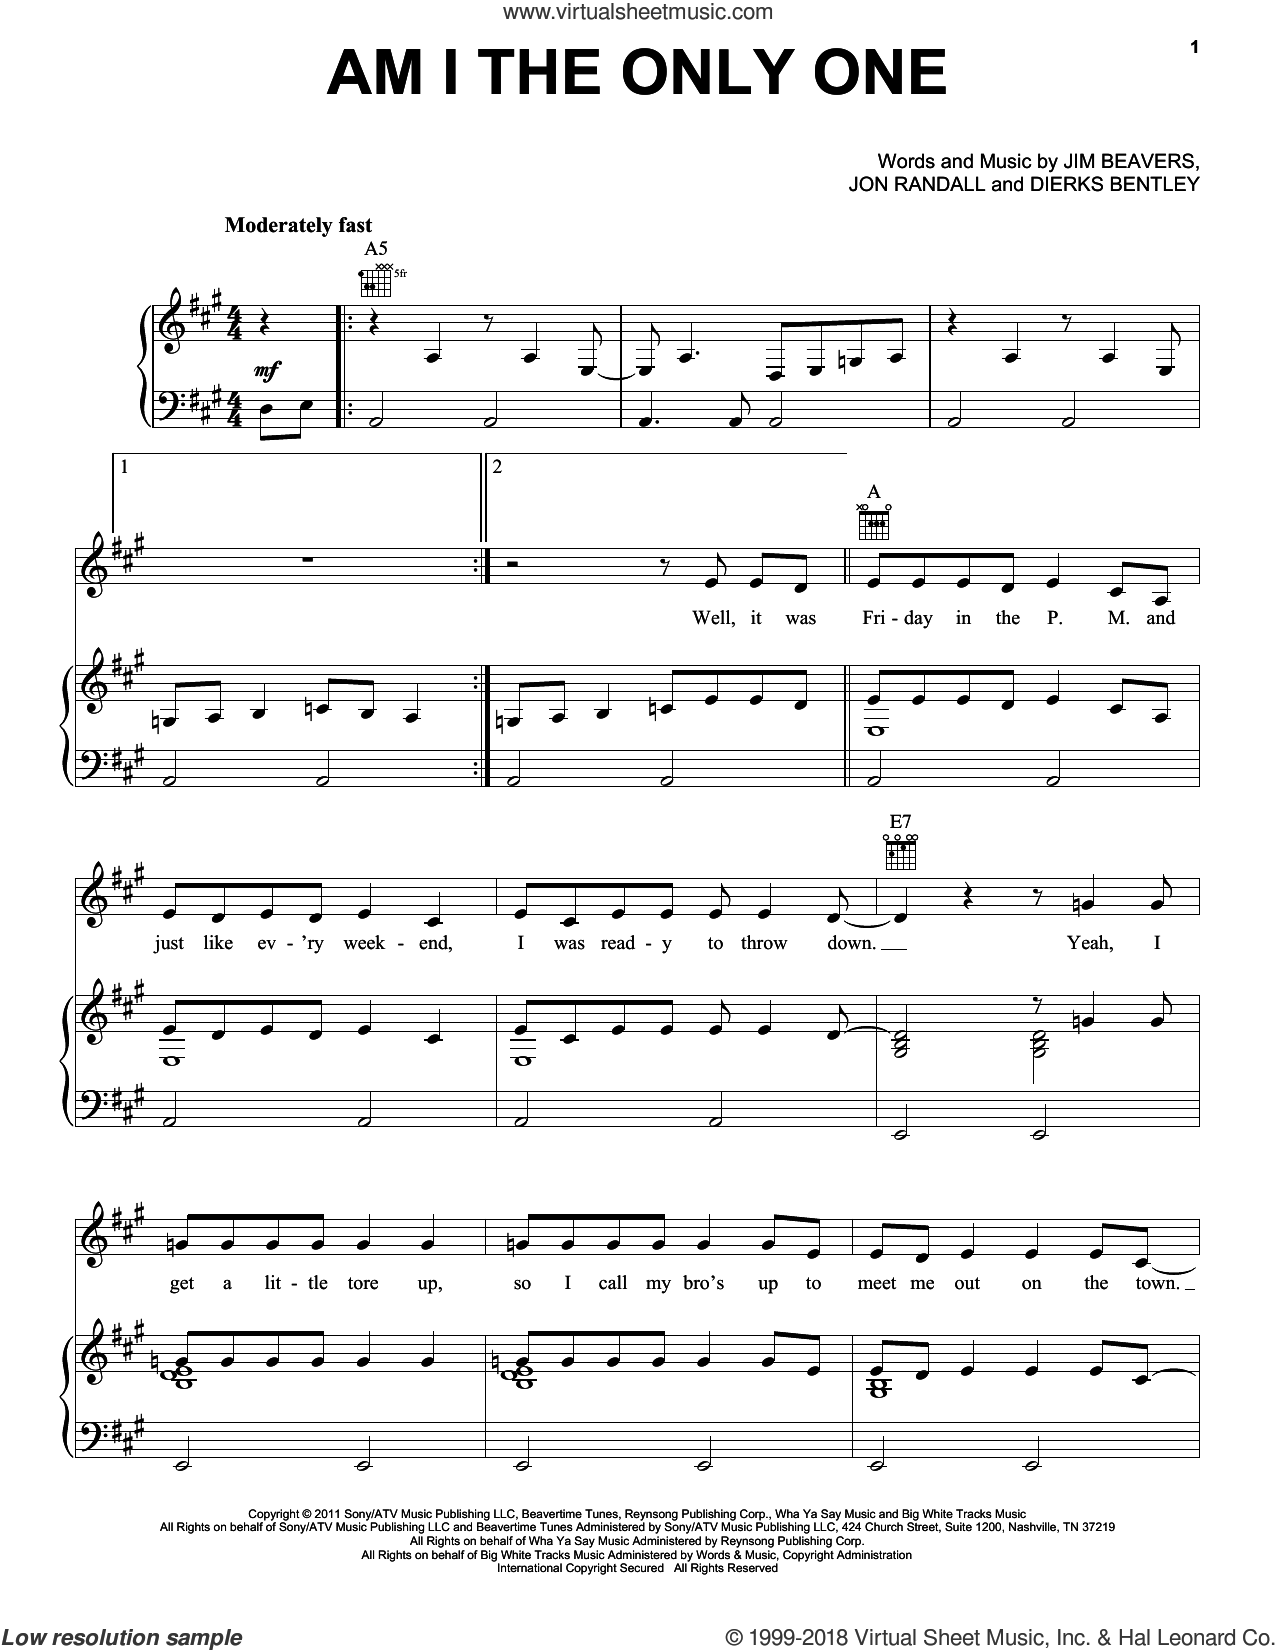 Am I The Only One sheet music for voice, piano or guitar by Jon Randall